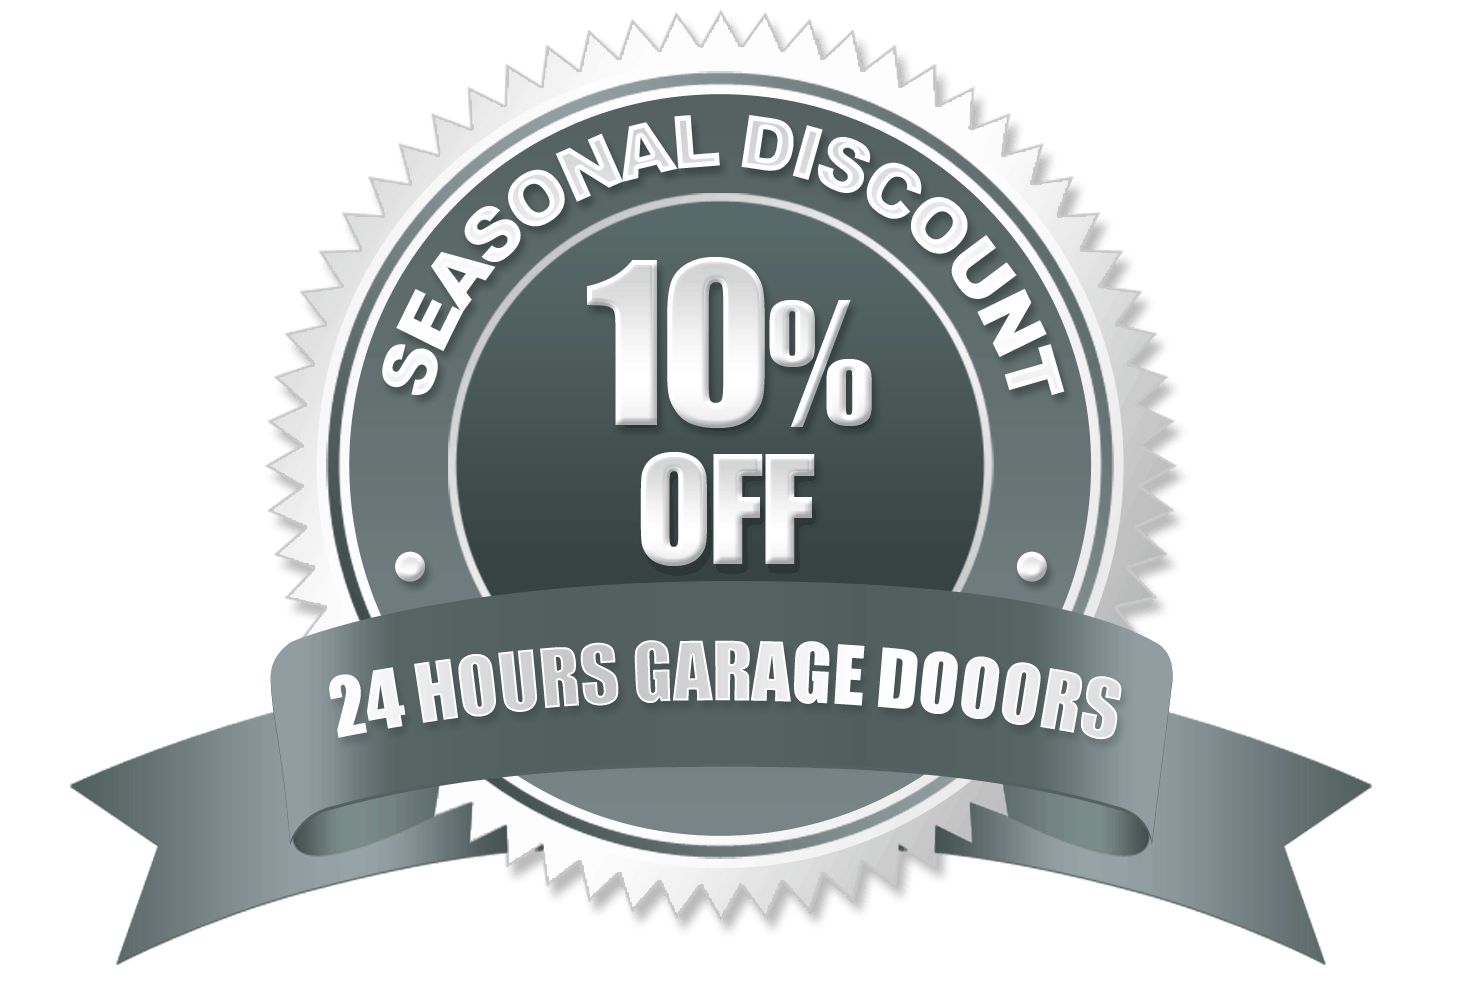 Virginia Garage Door Repair and Installation Seasonal Discount | 24 Hours Garage Doors